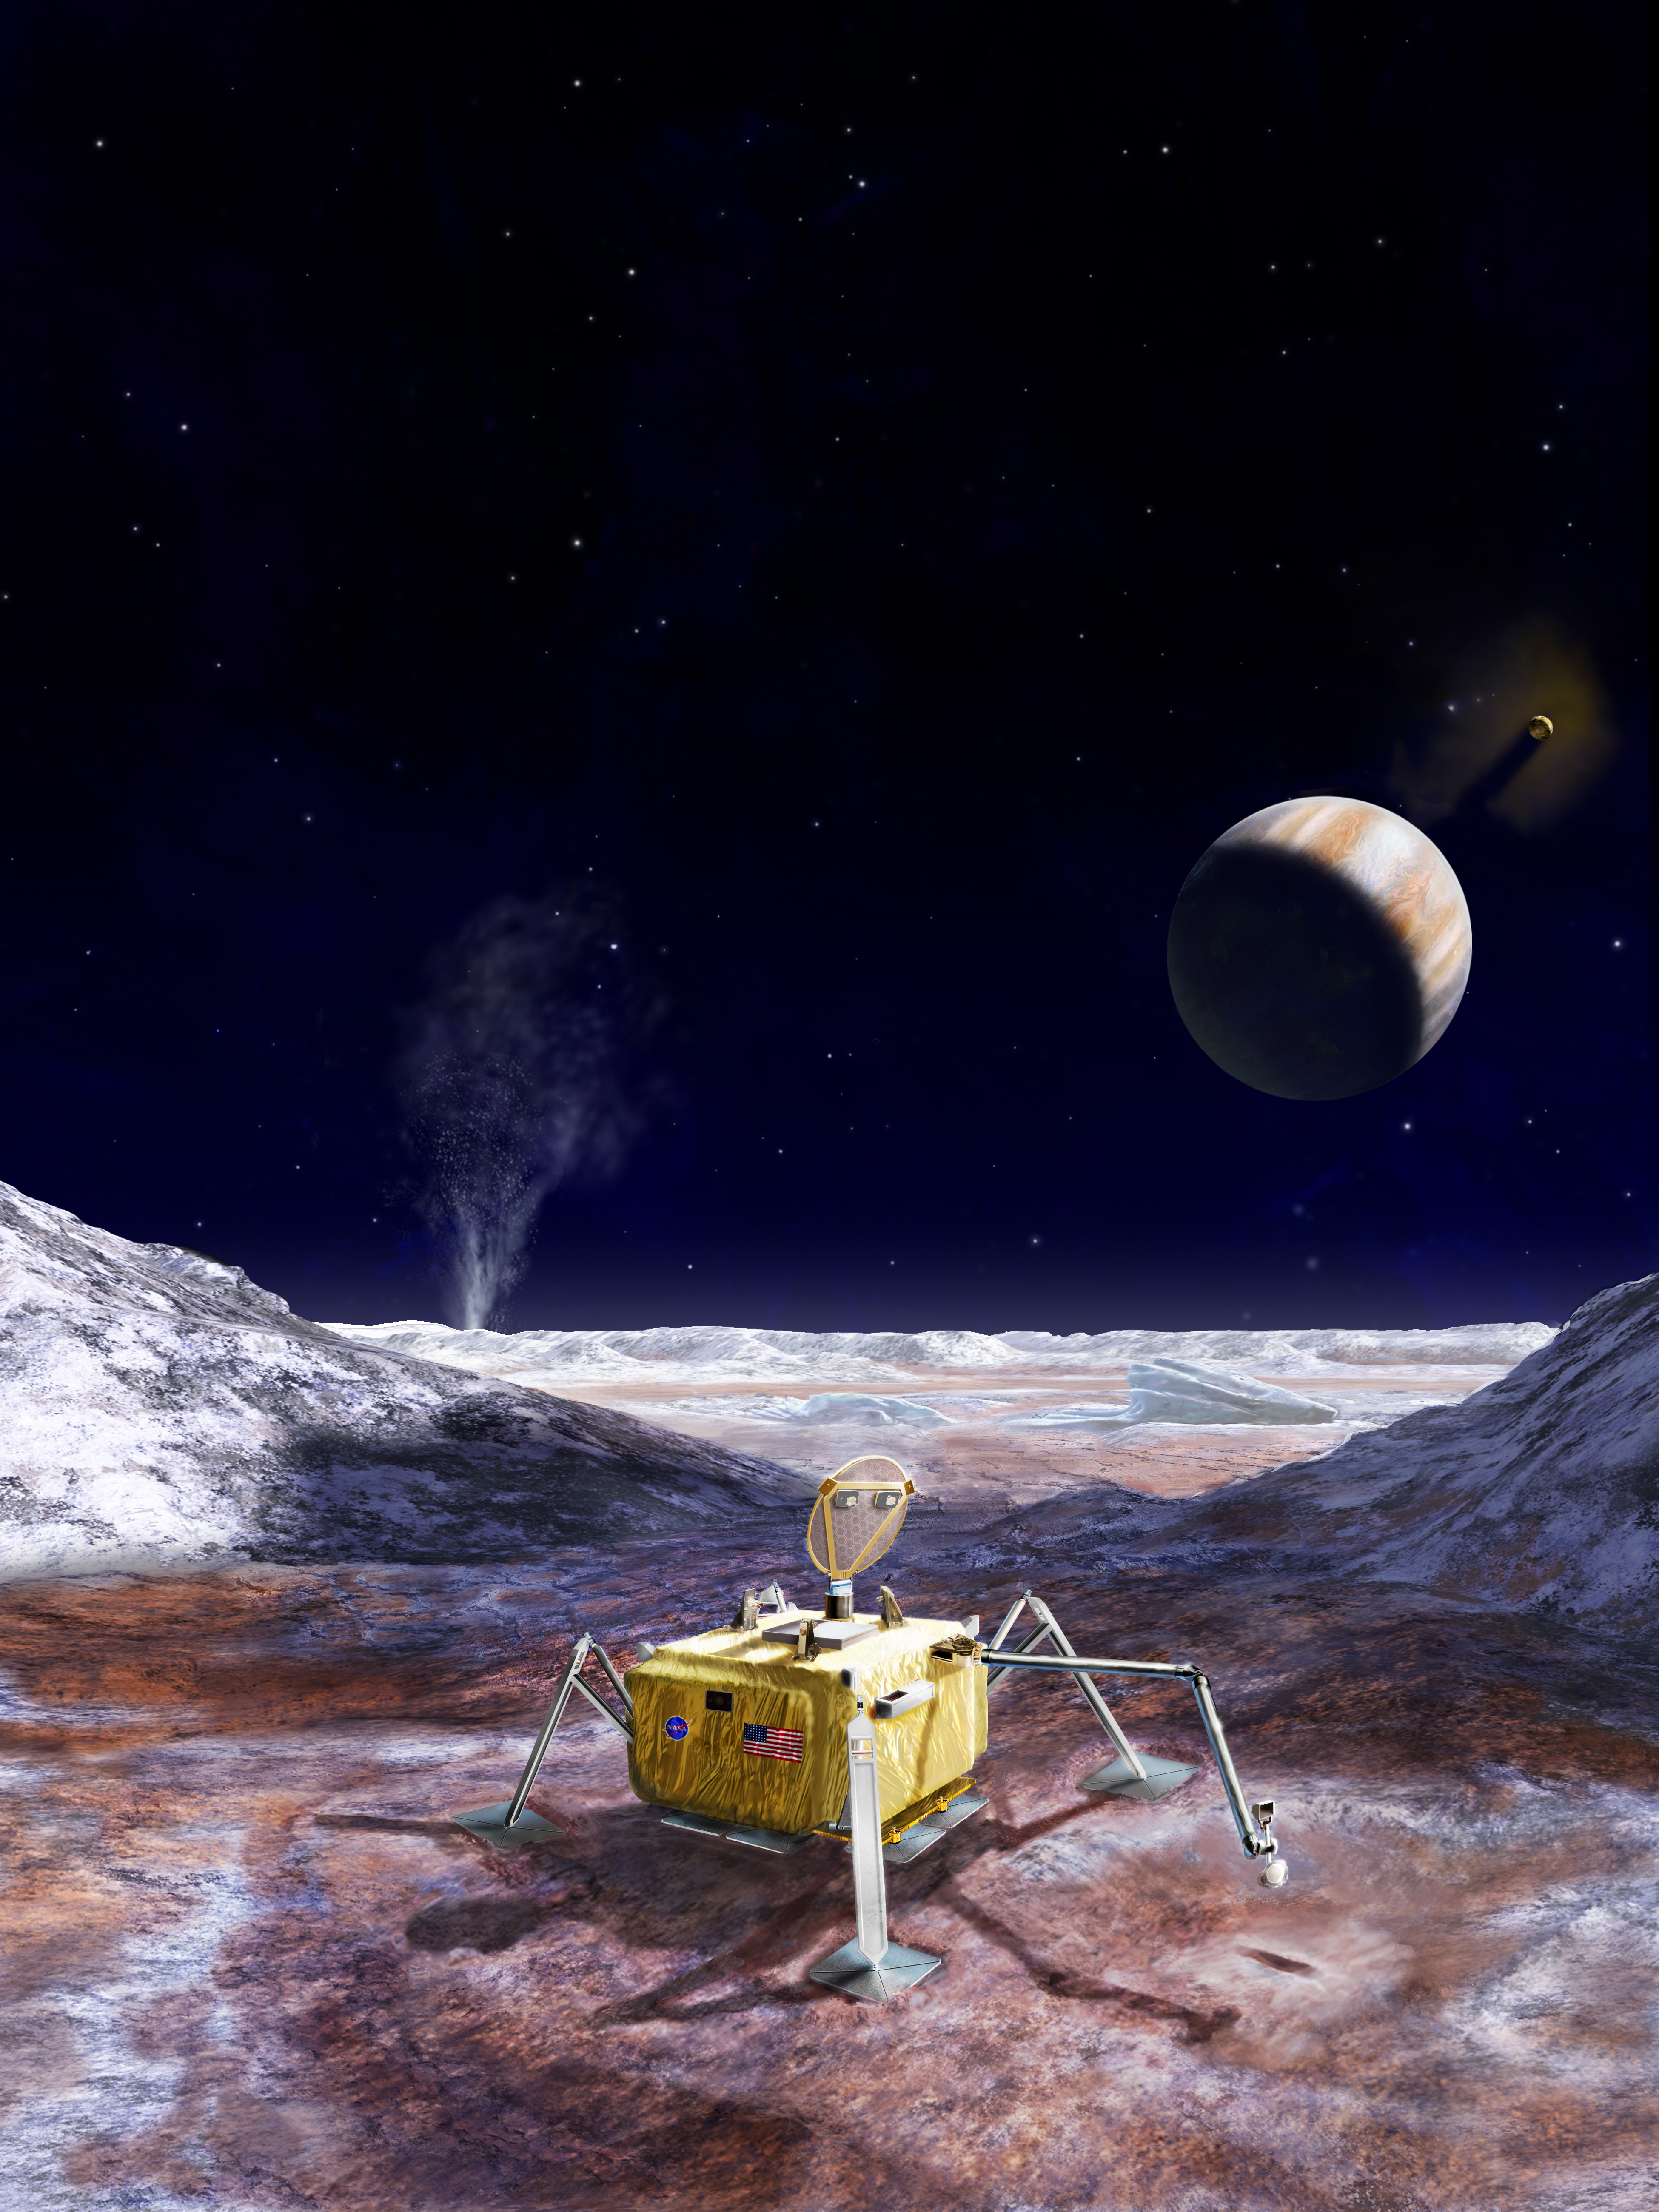 An artist's rendering shows the design for a possible future landing mission to Europa. The lander features a sampling arm to collect samples from the moon's surface.